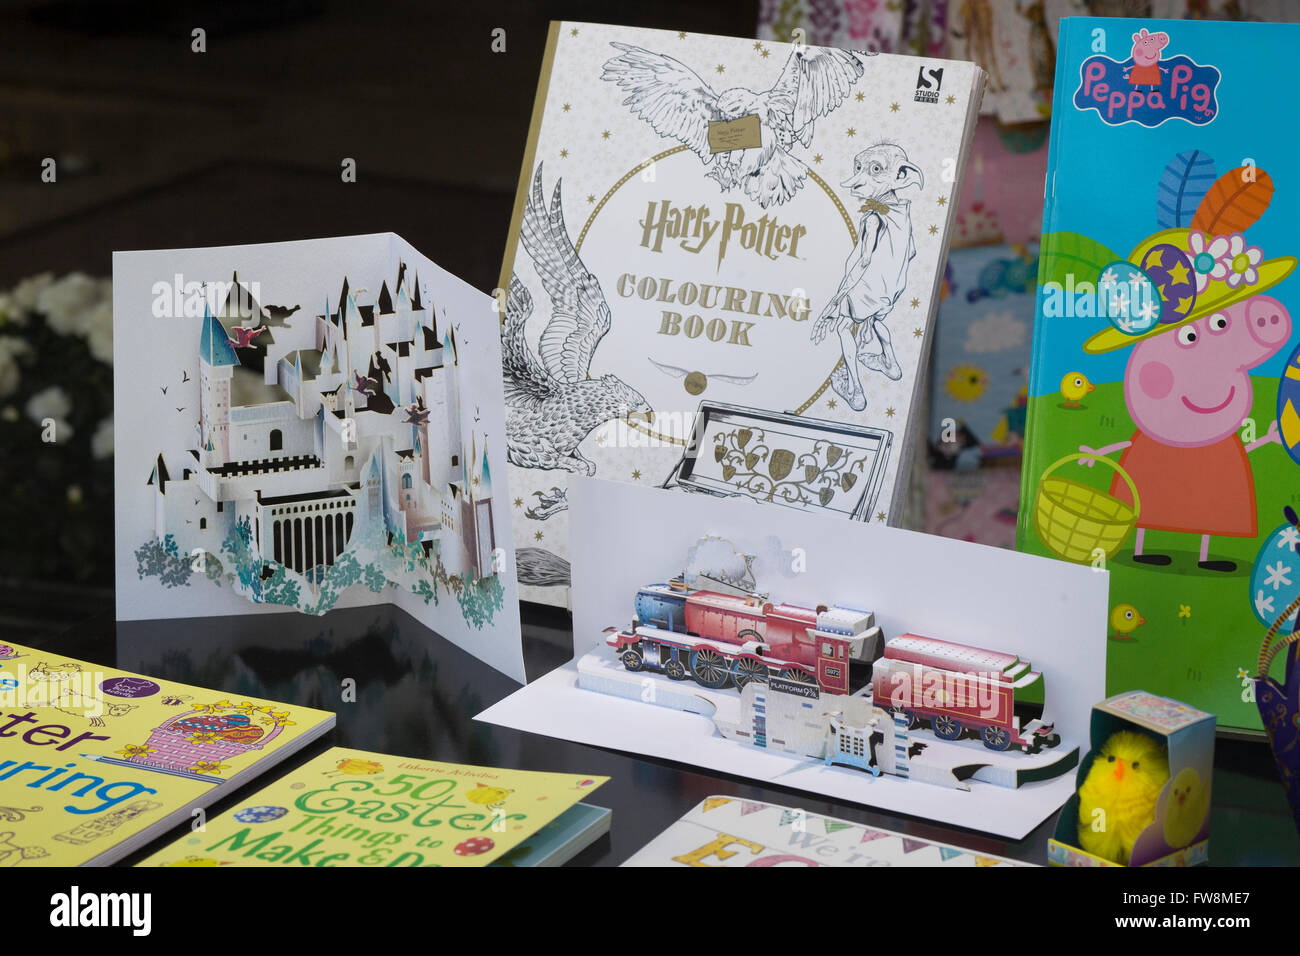 Pop Up Book Stock Photos & Pop Up Book Stock Images - Alamy